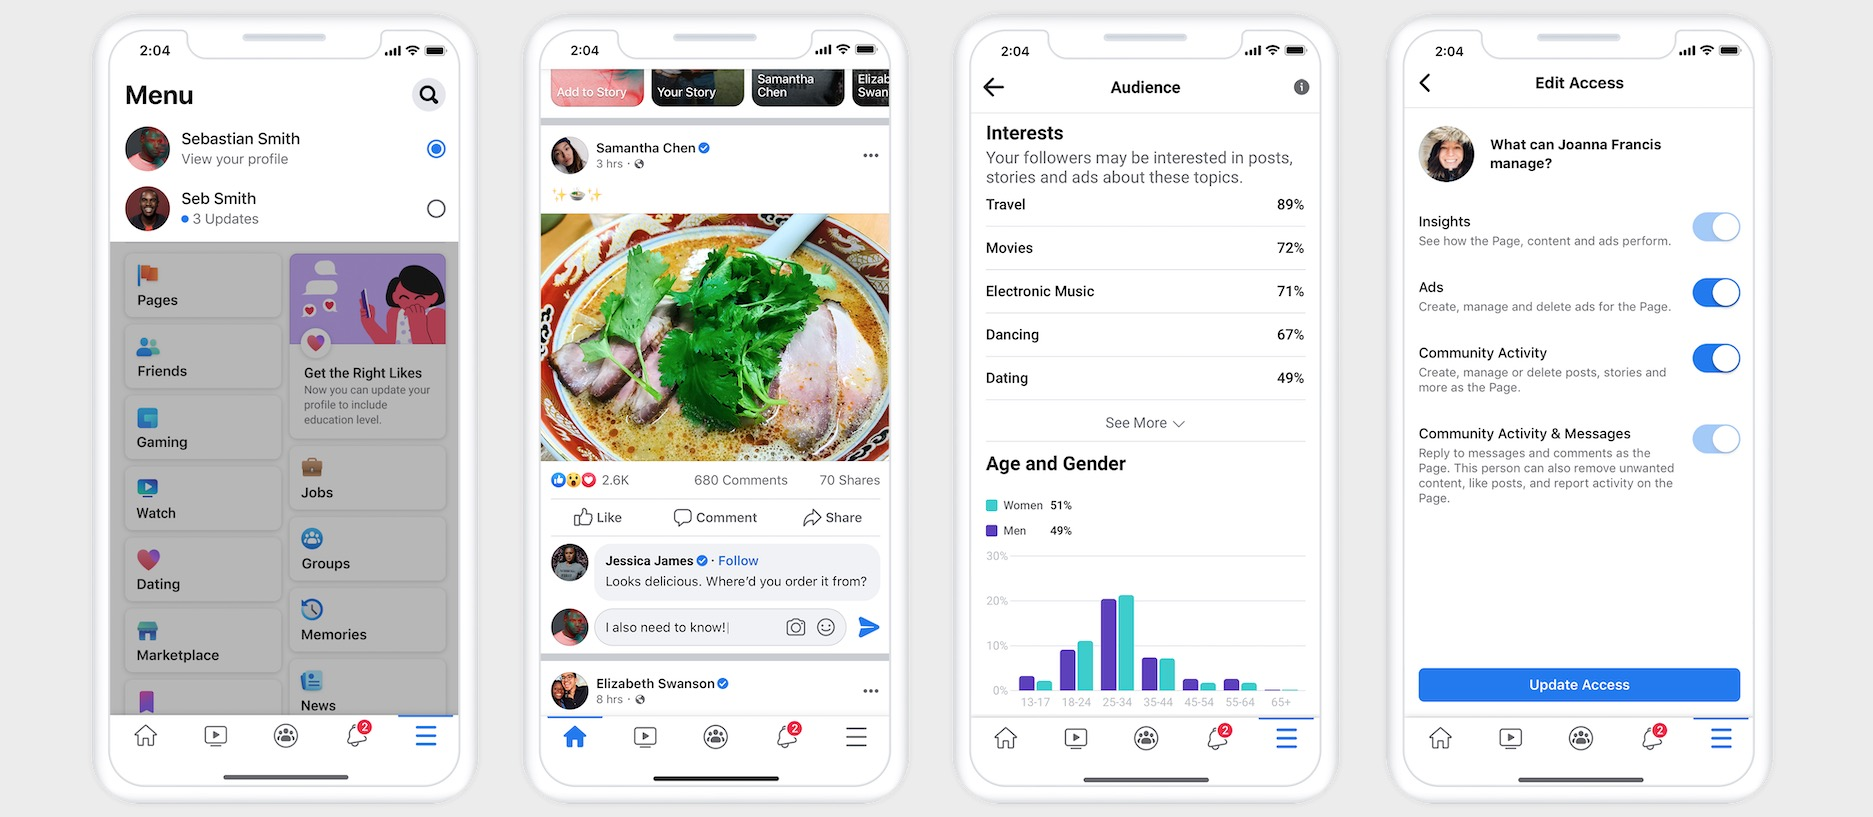 Facebook introduces the New Pages experience